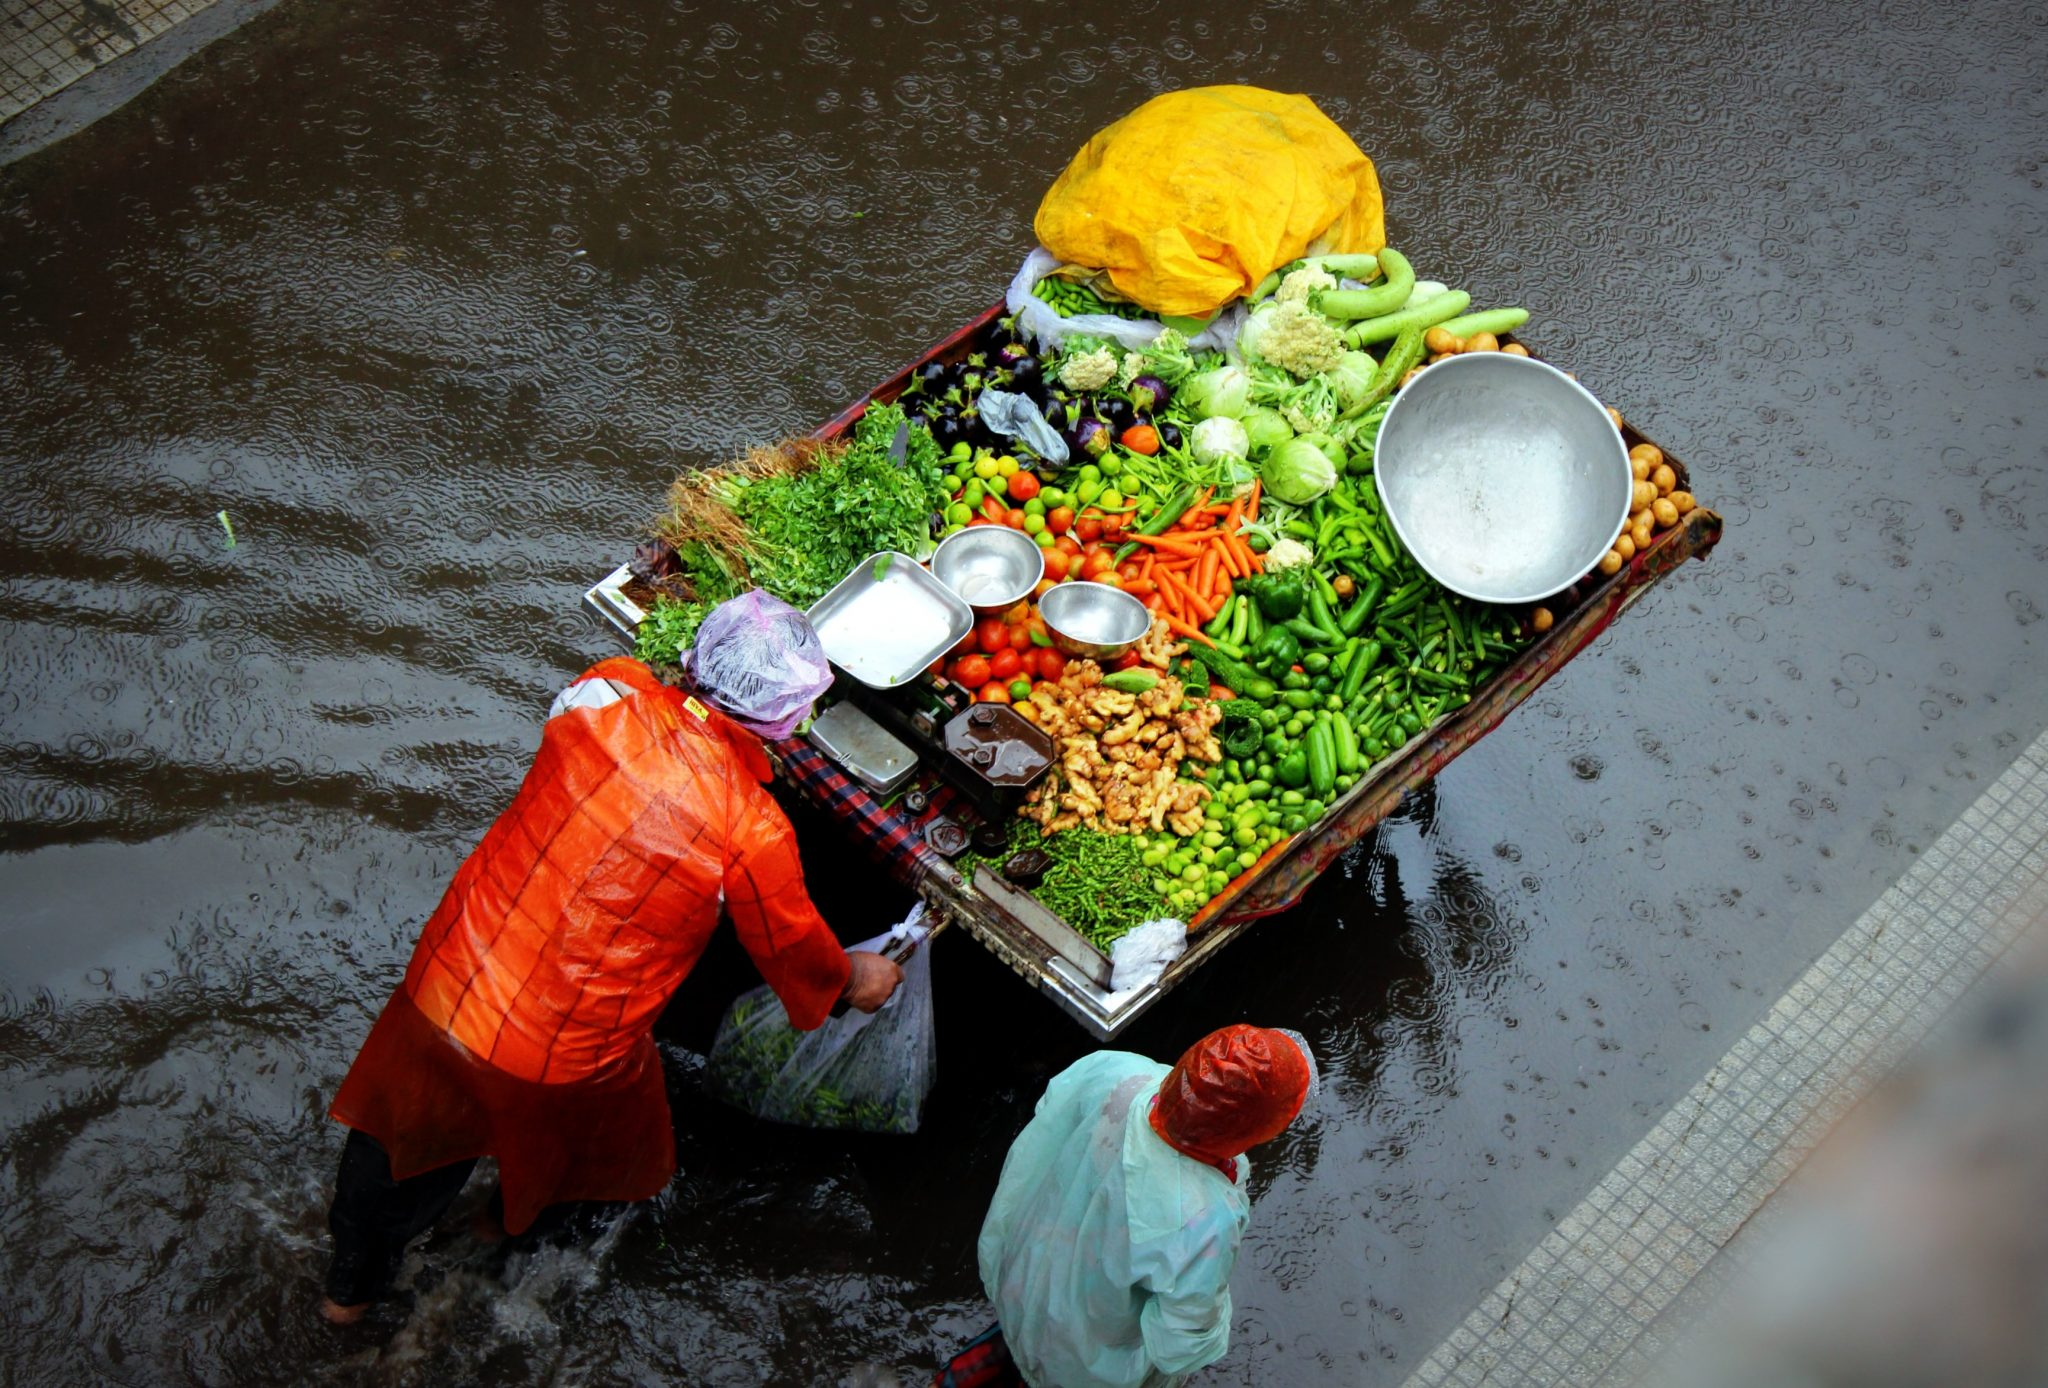 Man pushing cart with colorful vegetables in India